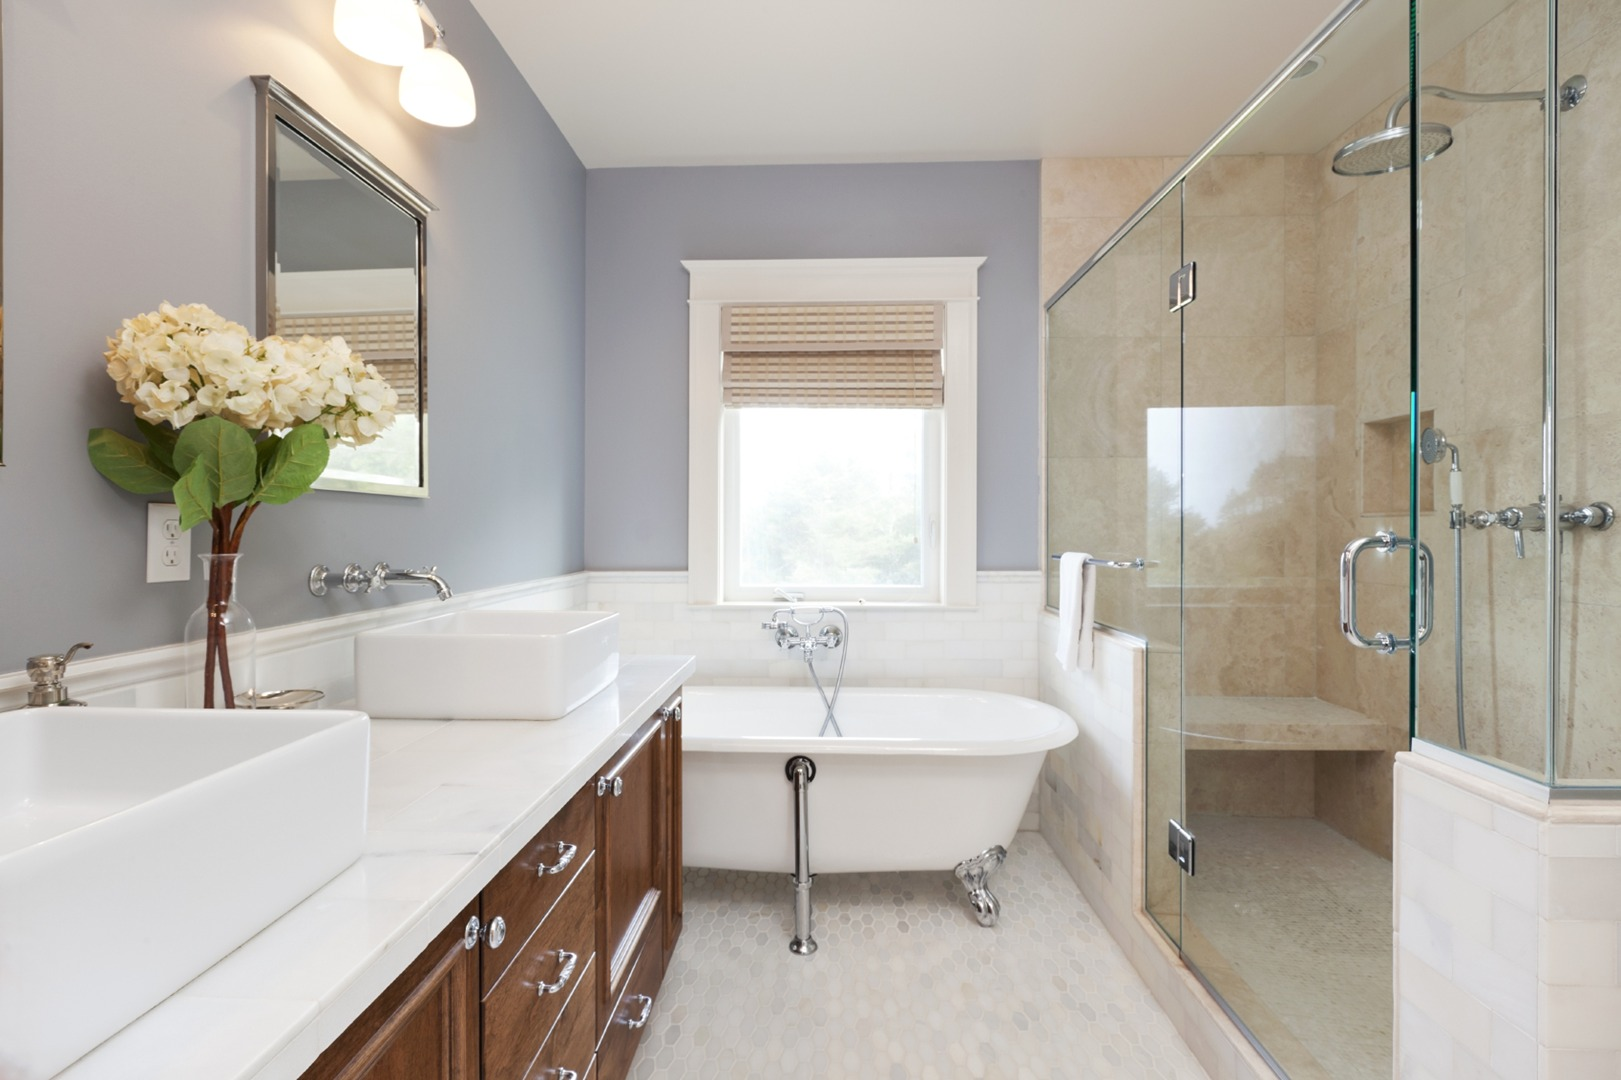 Renovate bathrooms - Bathroom Renovations Contractors Bathroom Remodeling Toronto Sina Bathroom Renovations